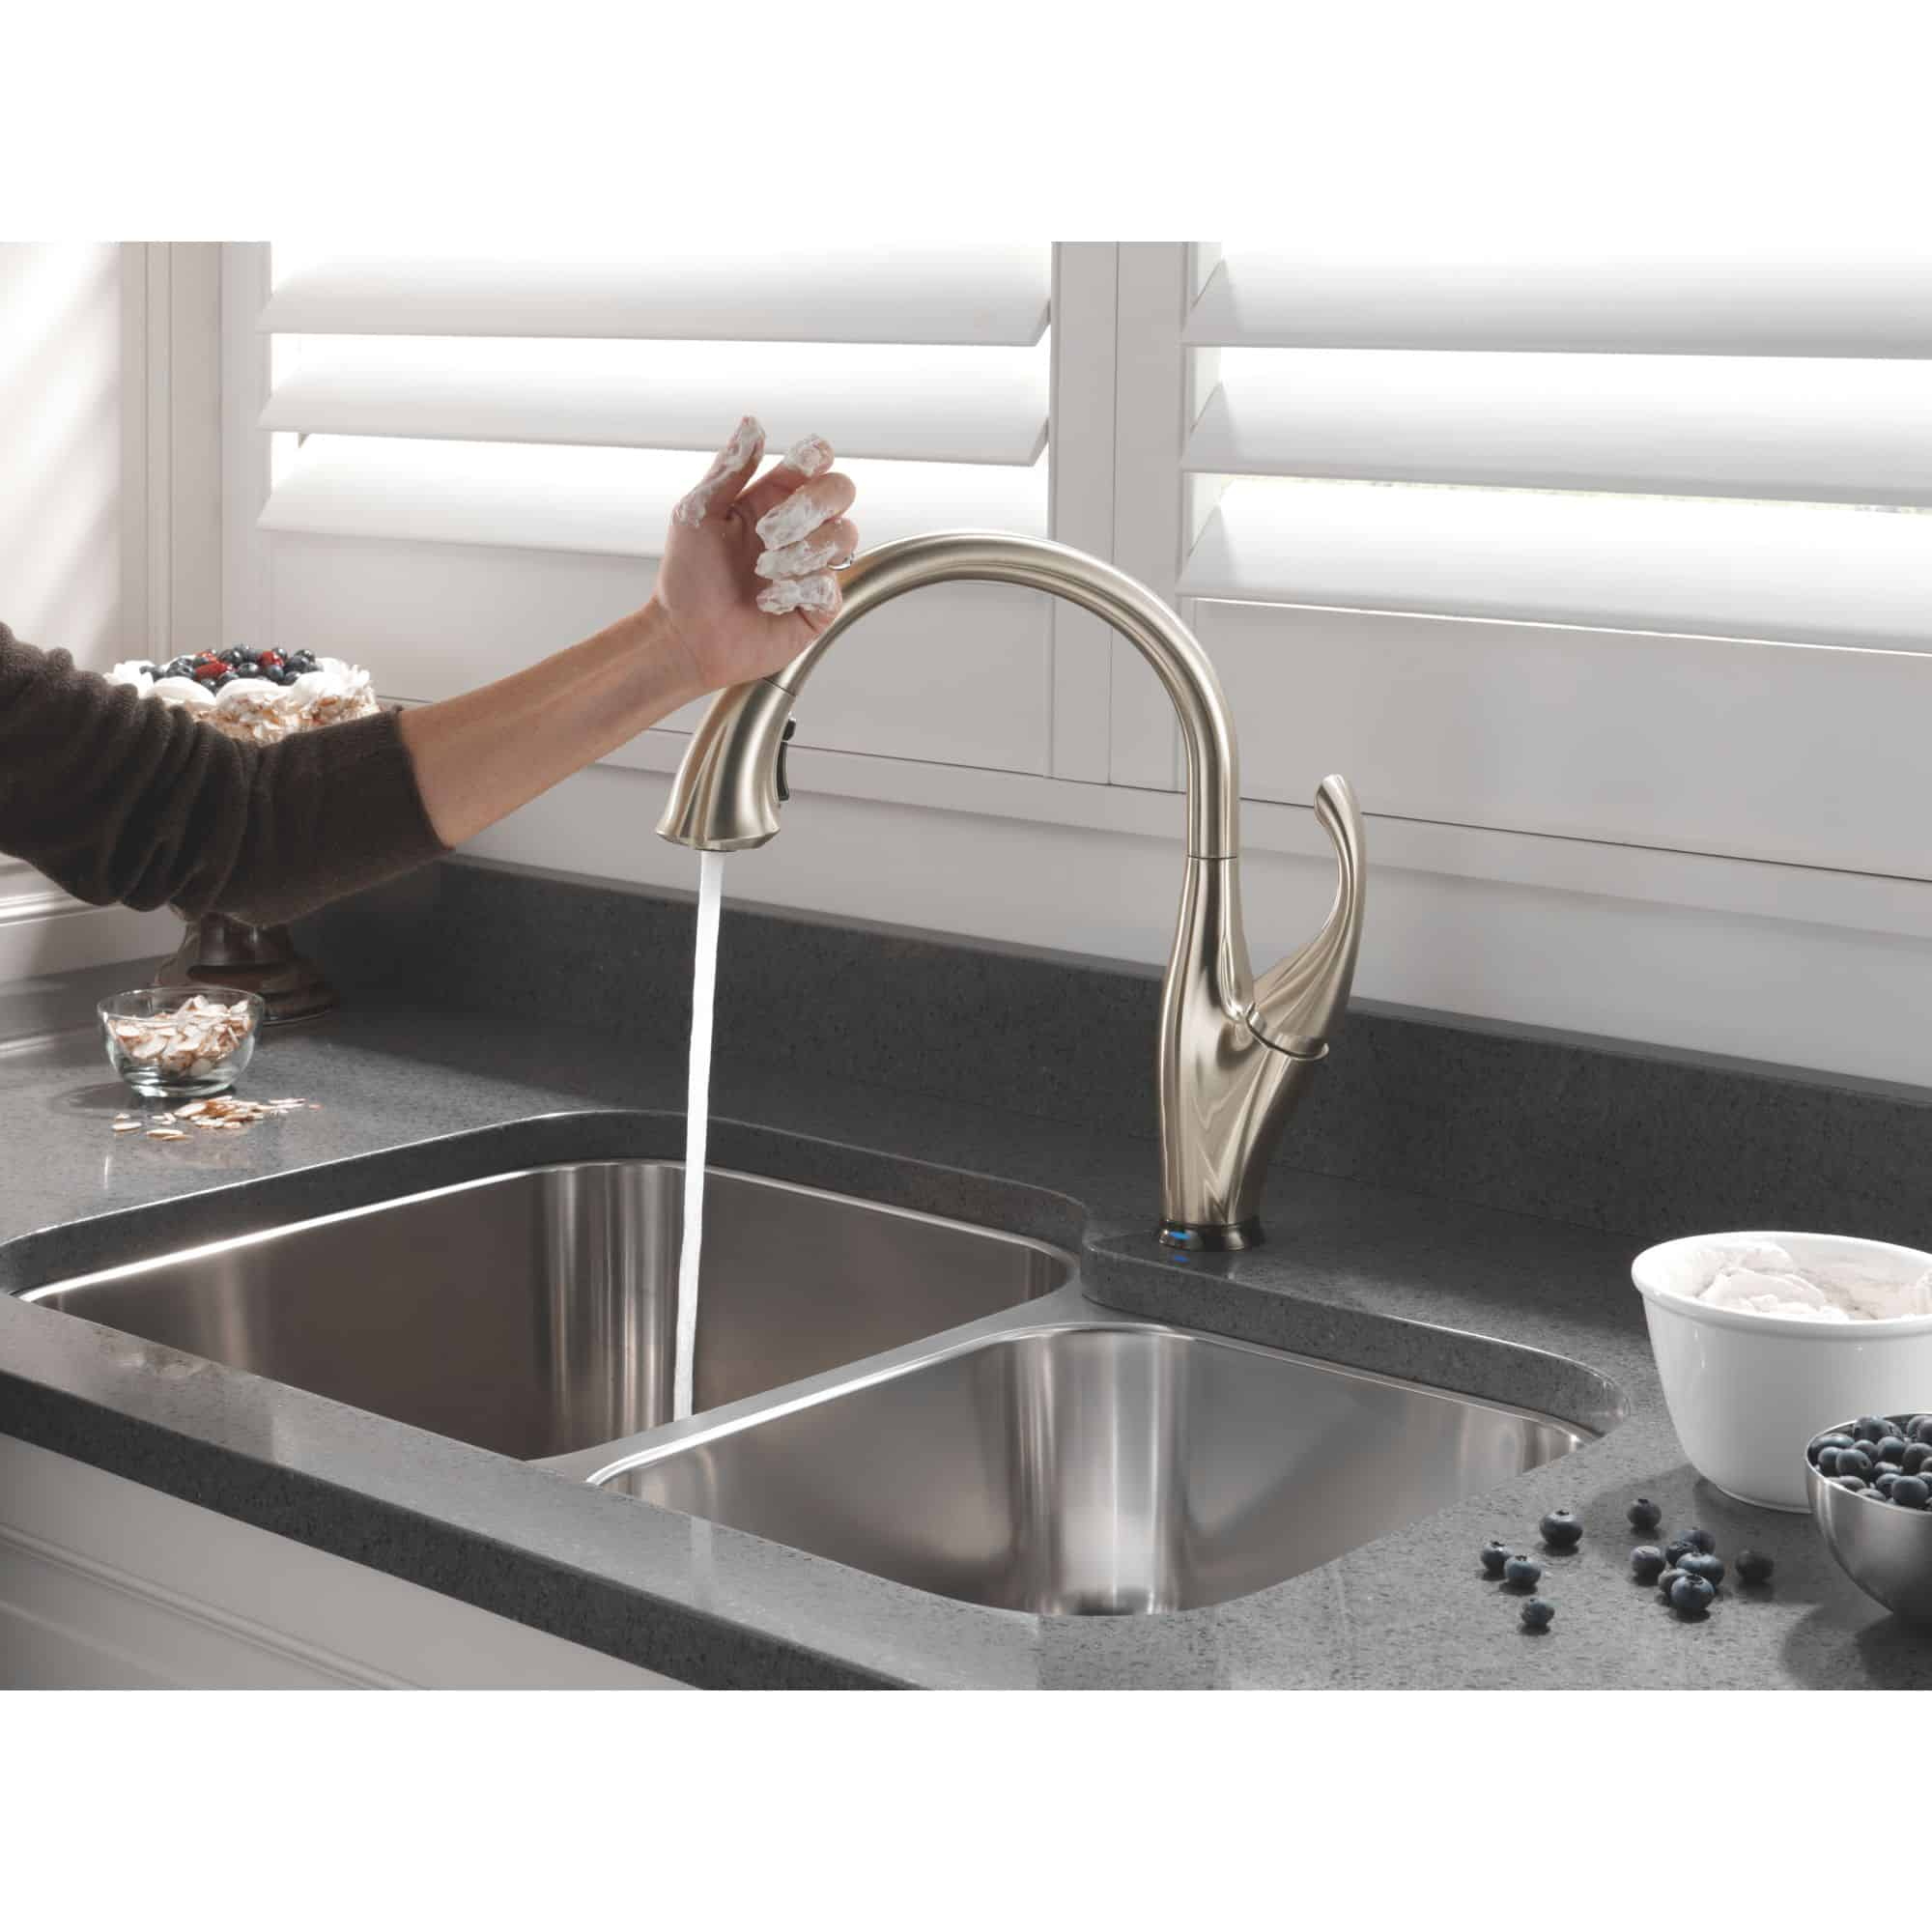 Delta Faucet with Touch2O Technology!